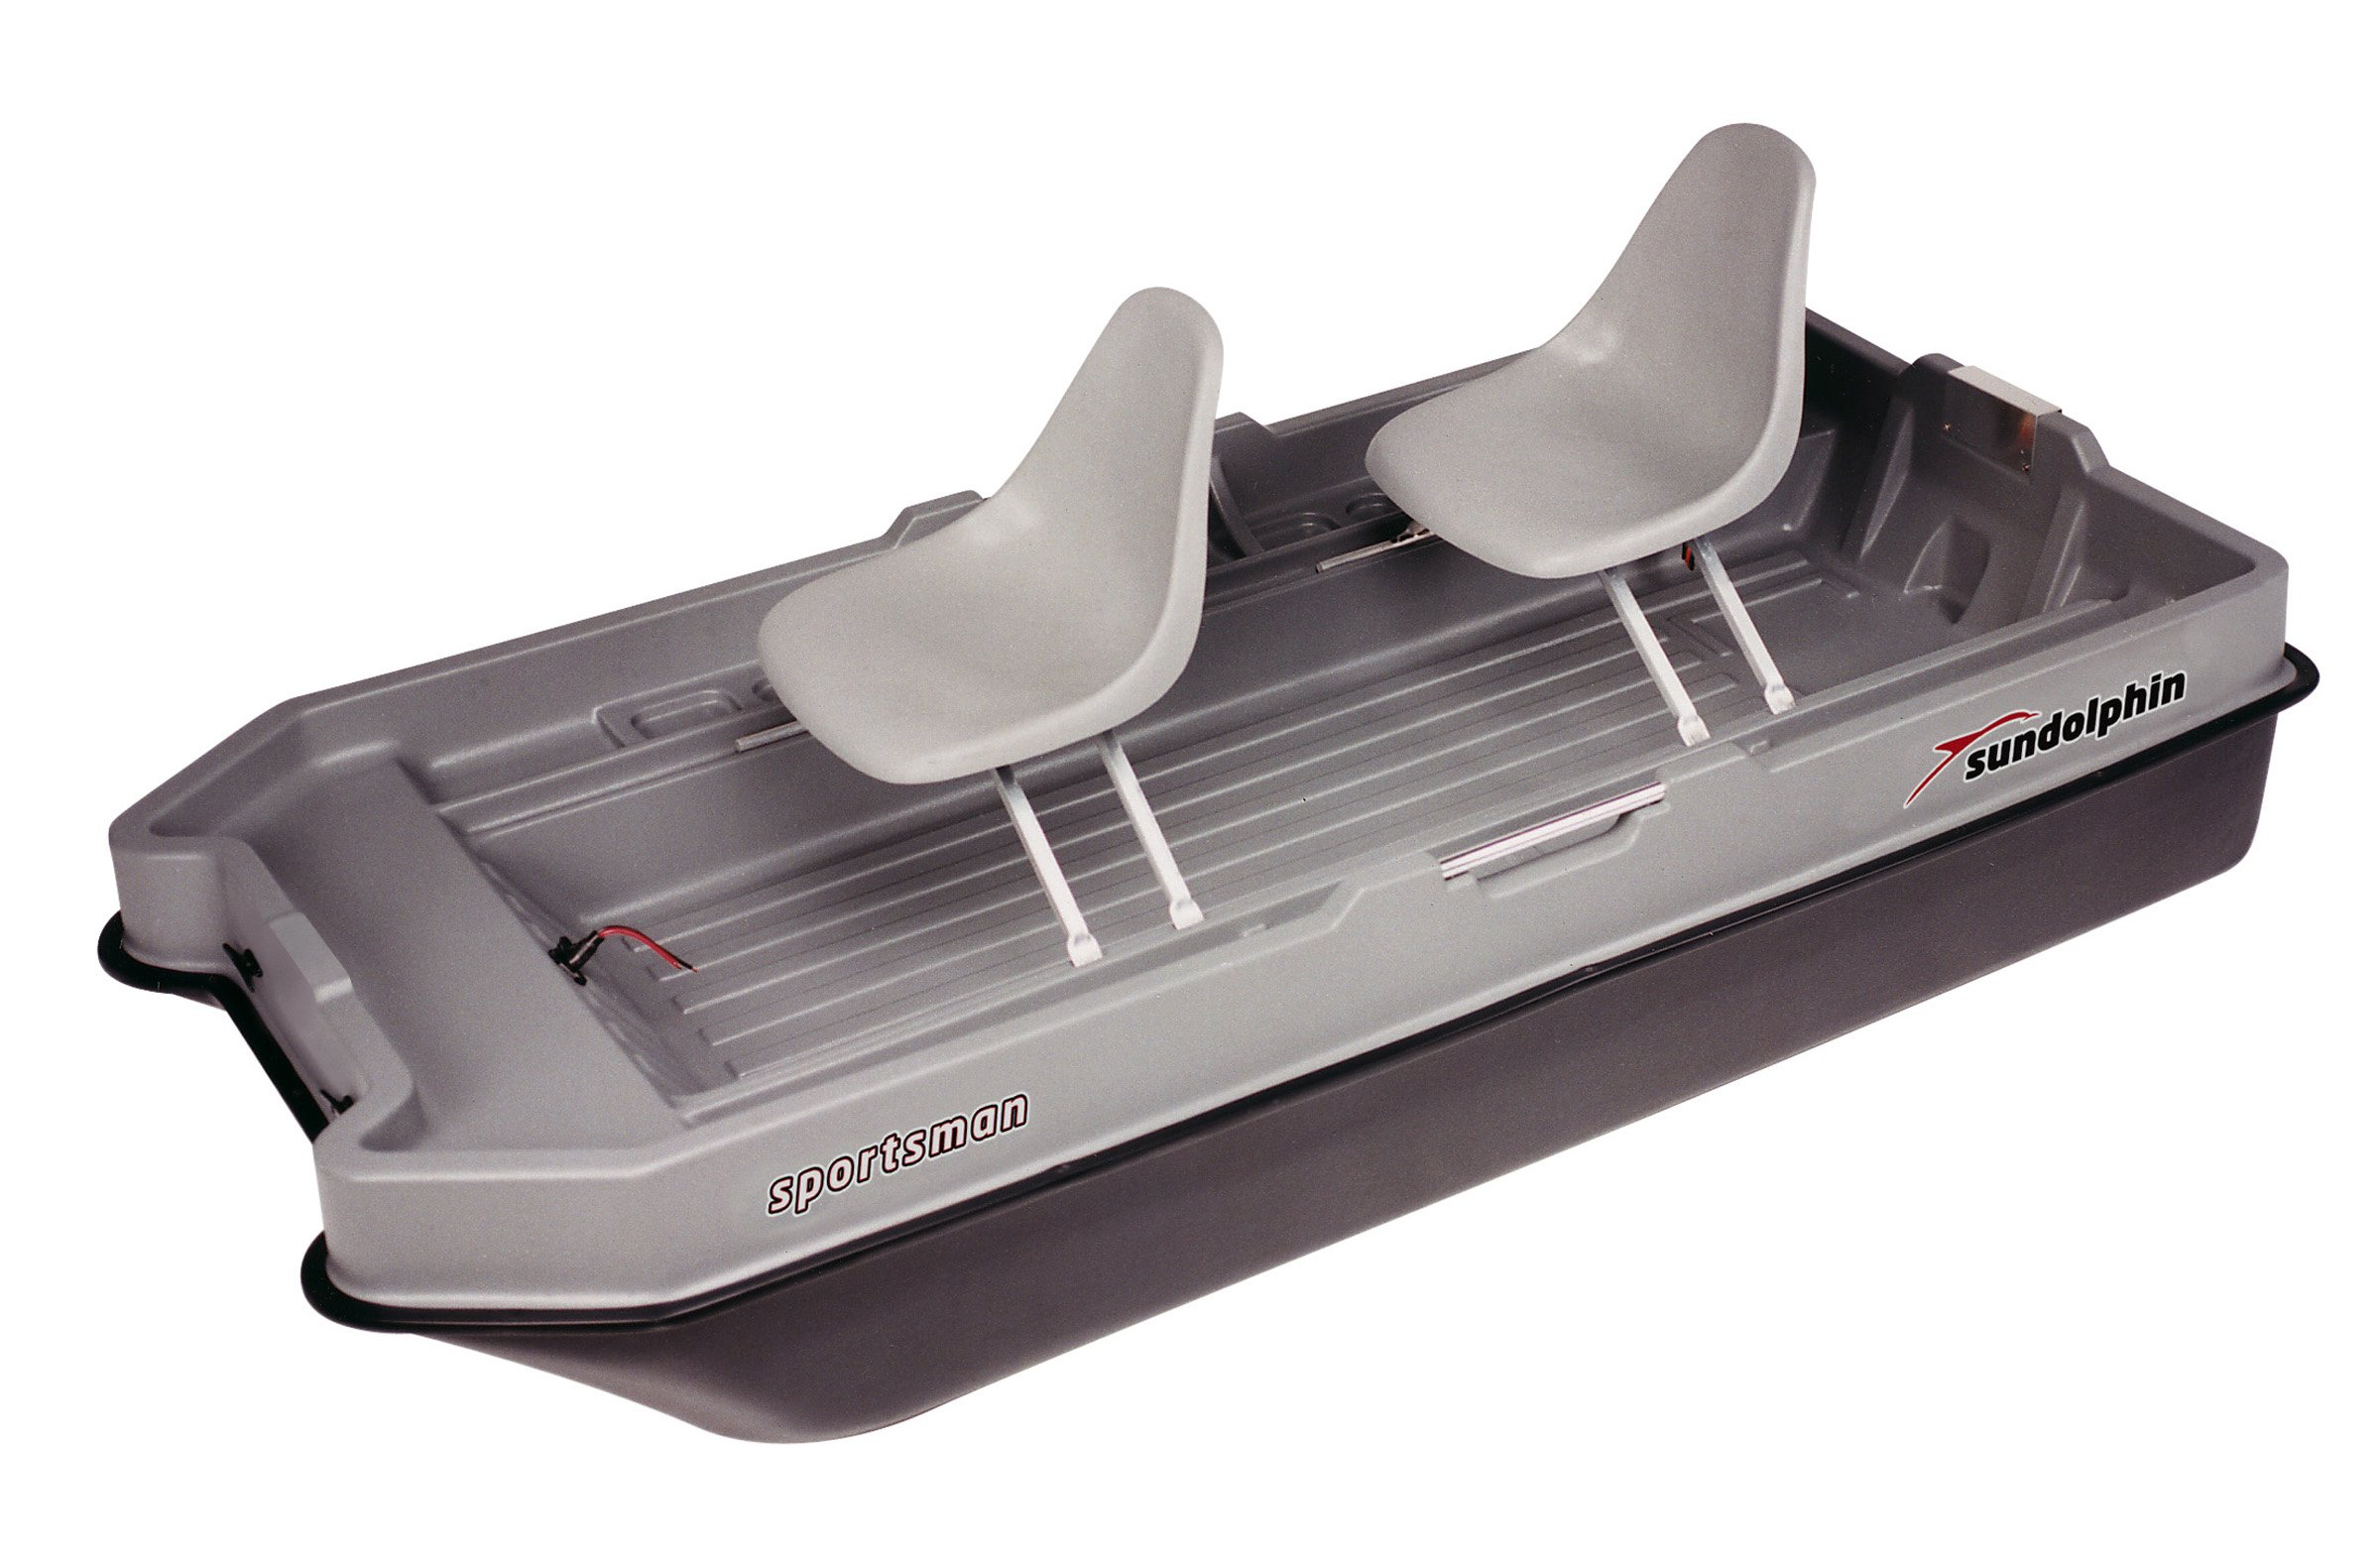 Sun Dolphin Sportsman Fishing Boat (Gray/Black, 8.6-Feet) by Sun Dolphin